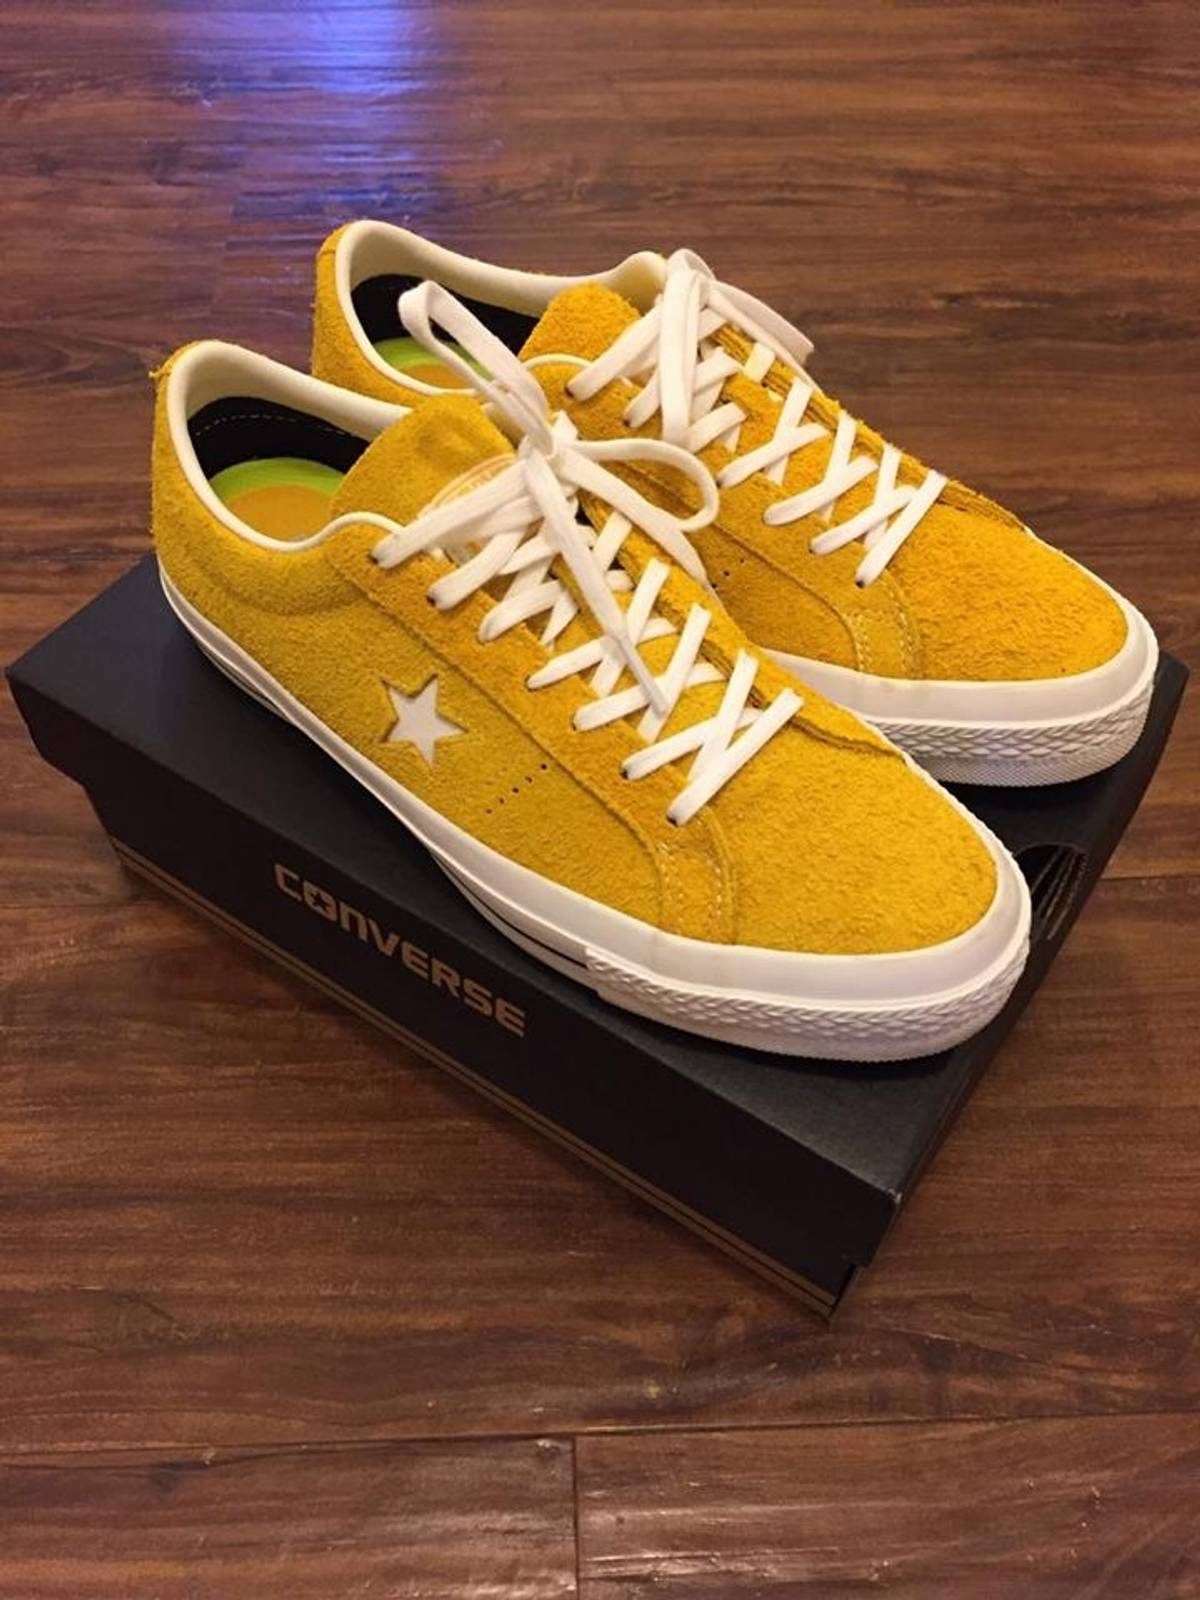 bcd16273d12774 Converse One Star Hairy Suede Pack (Yellow) Size 8 - Low-Top Sneakers for  Sale - Grailed